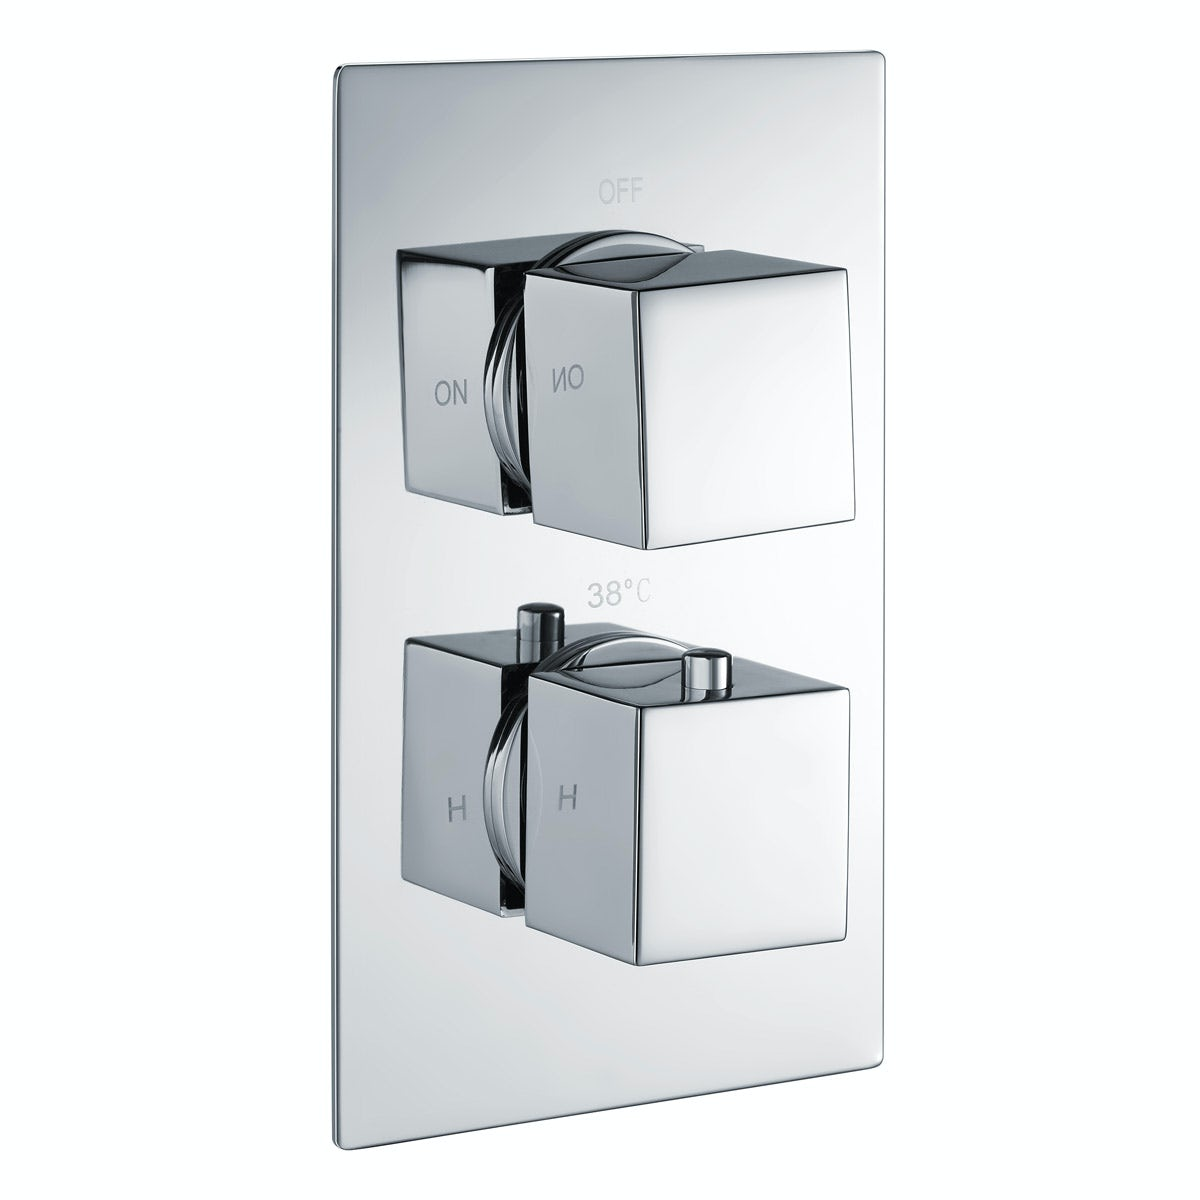 Kirke Connect twin thermostatic shower valve